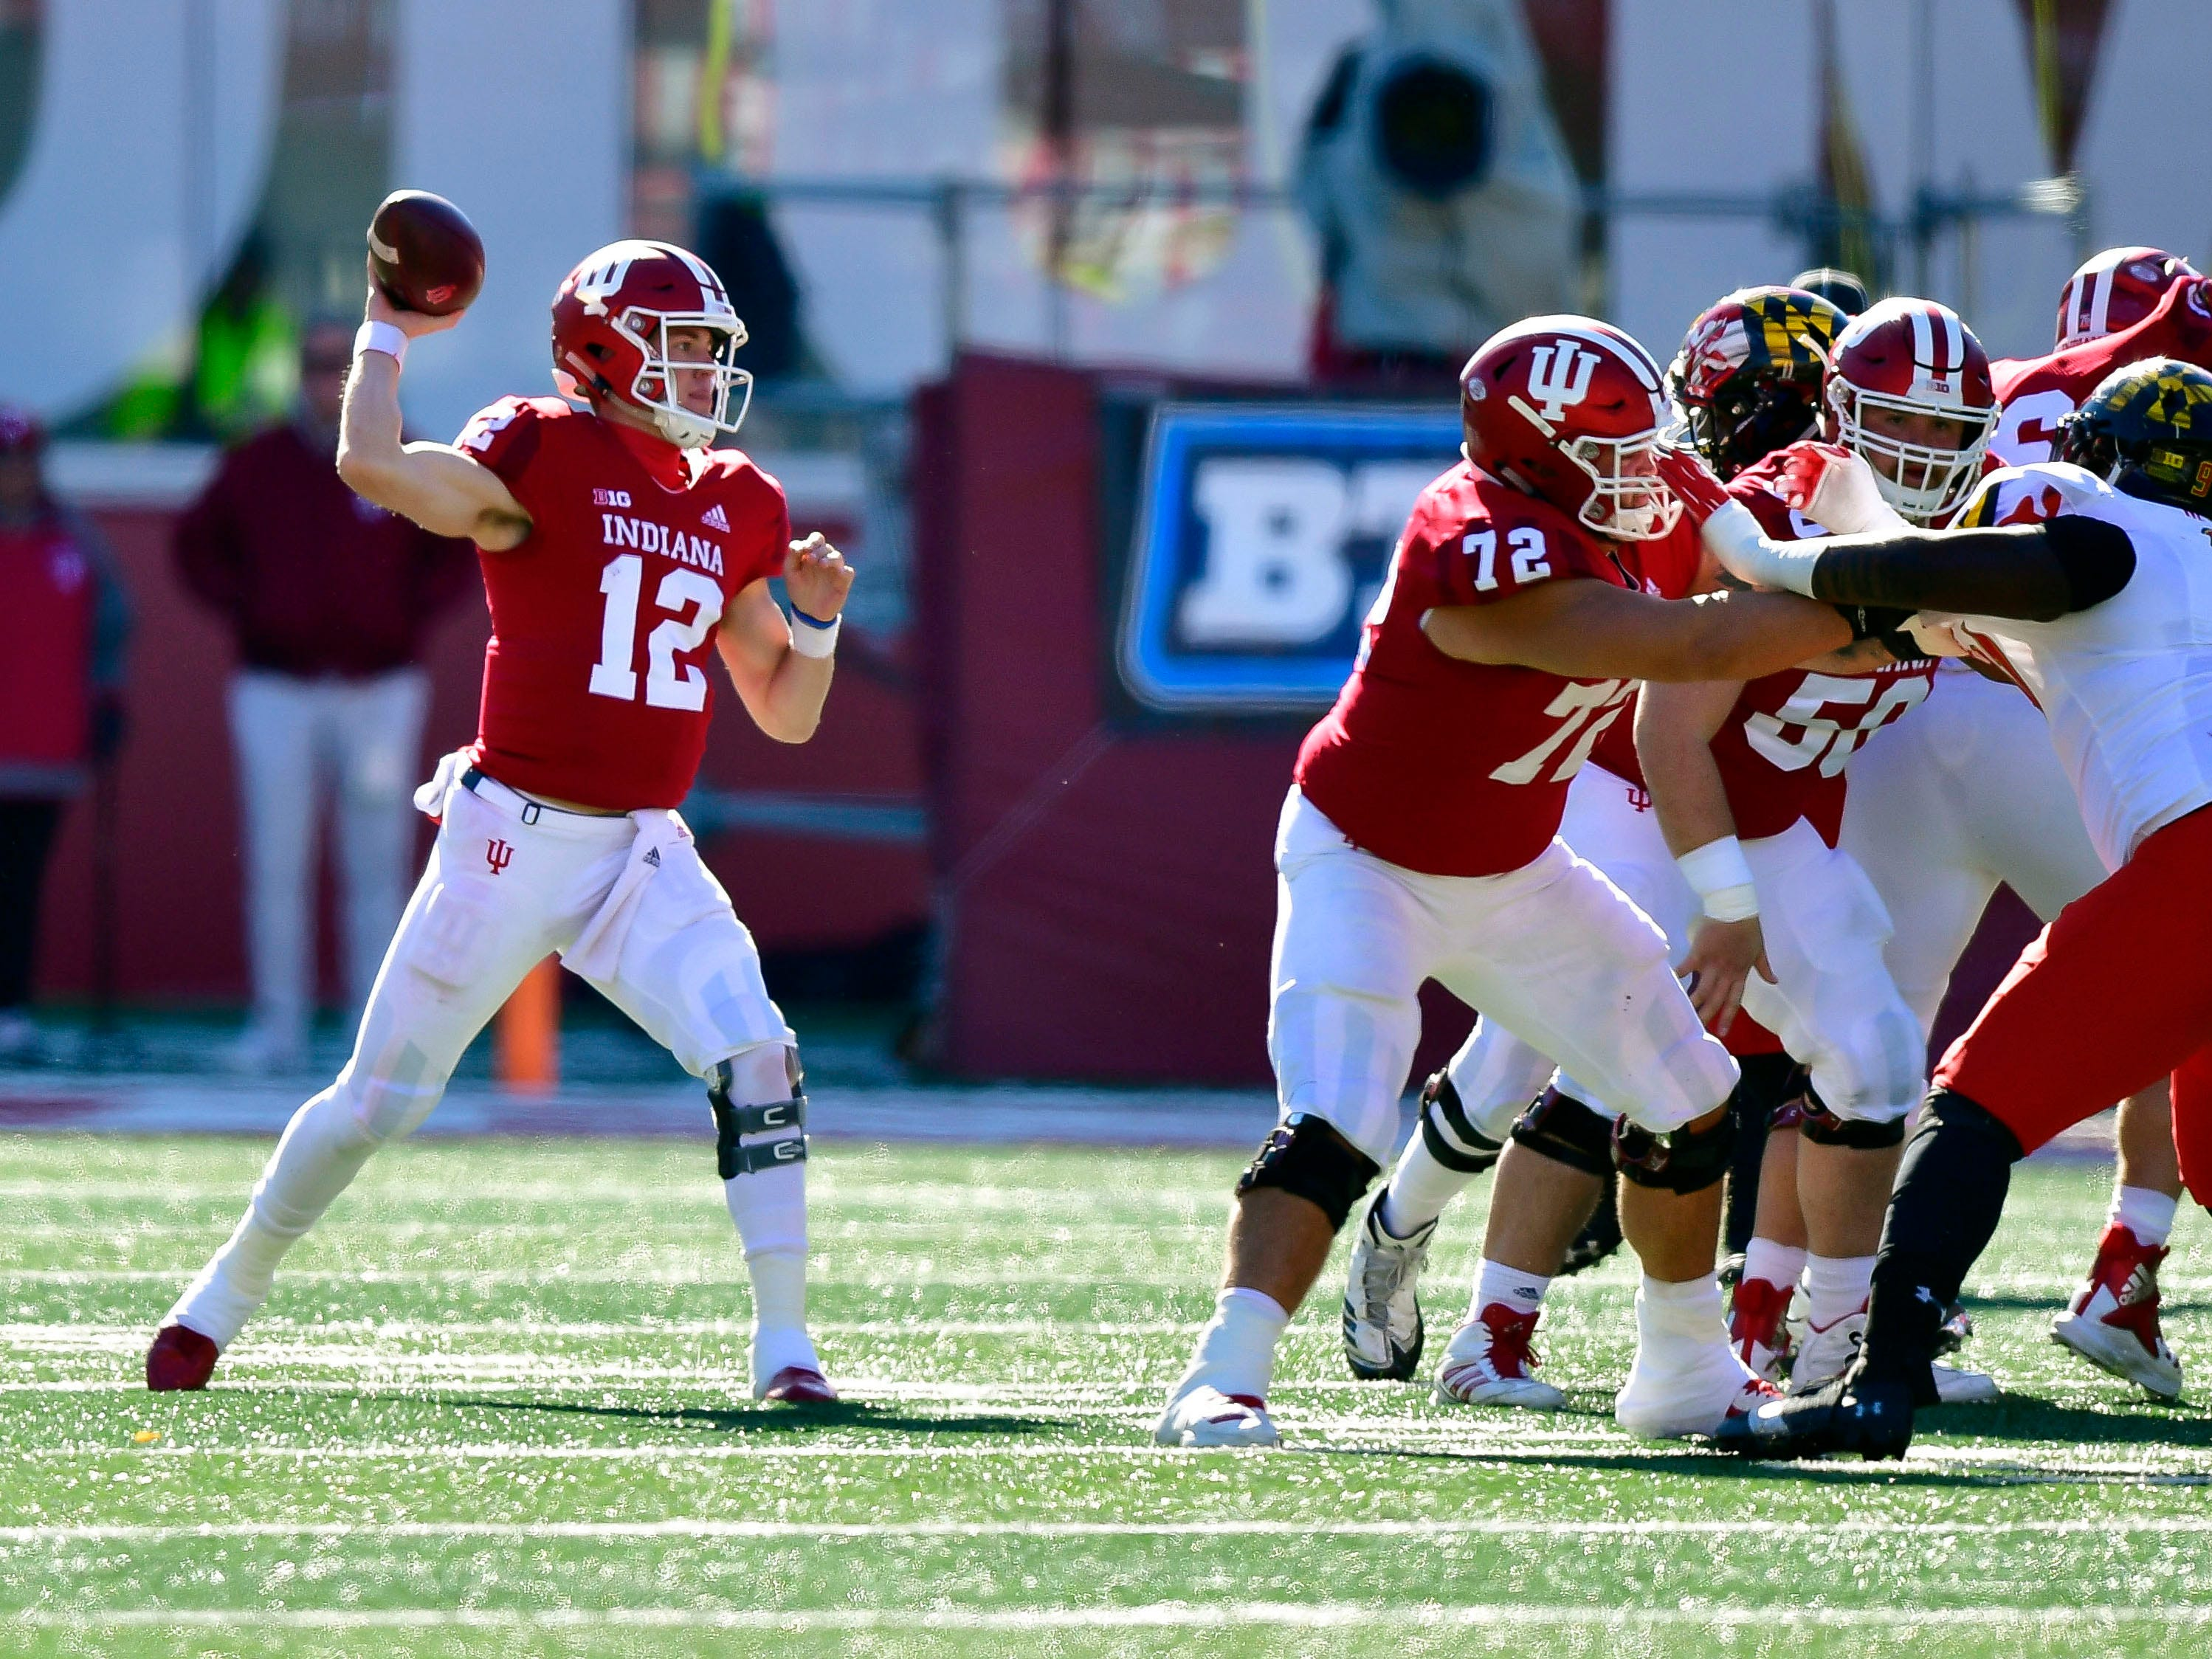 Indiana Hoosiers quarterback Peyton Ramsey (12) throws a pass during the fist half of the the game against the Maryland Terrapins at Memorial Stadium .